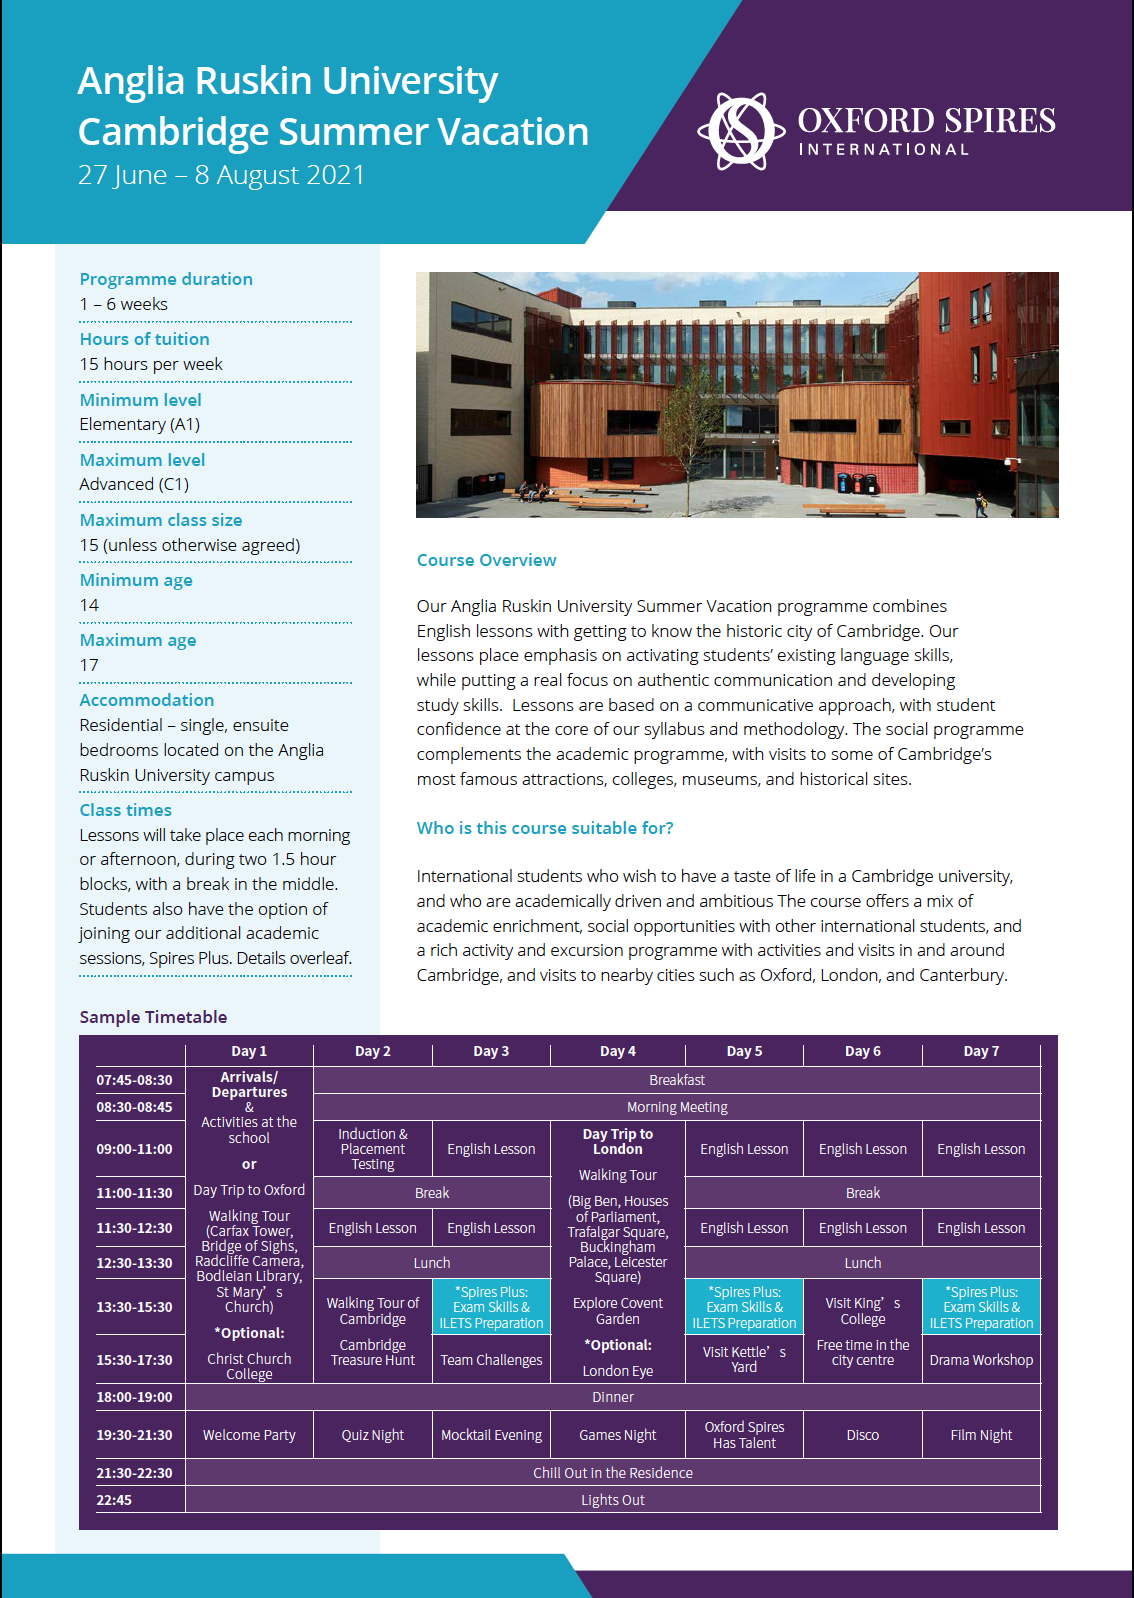 Anglia Ruskin University's summer vacation info sheet